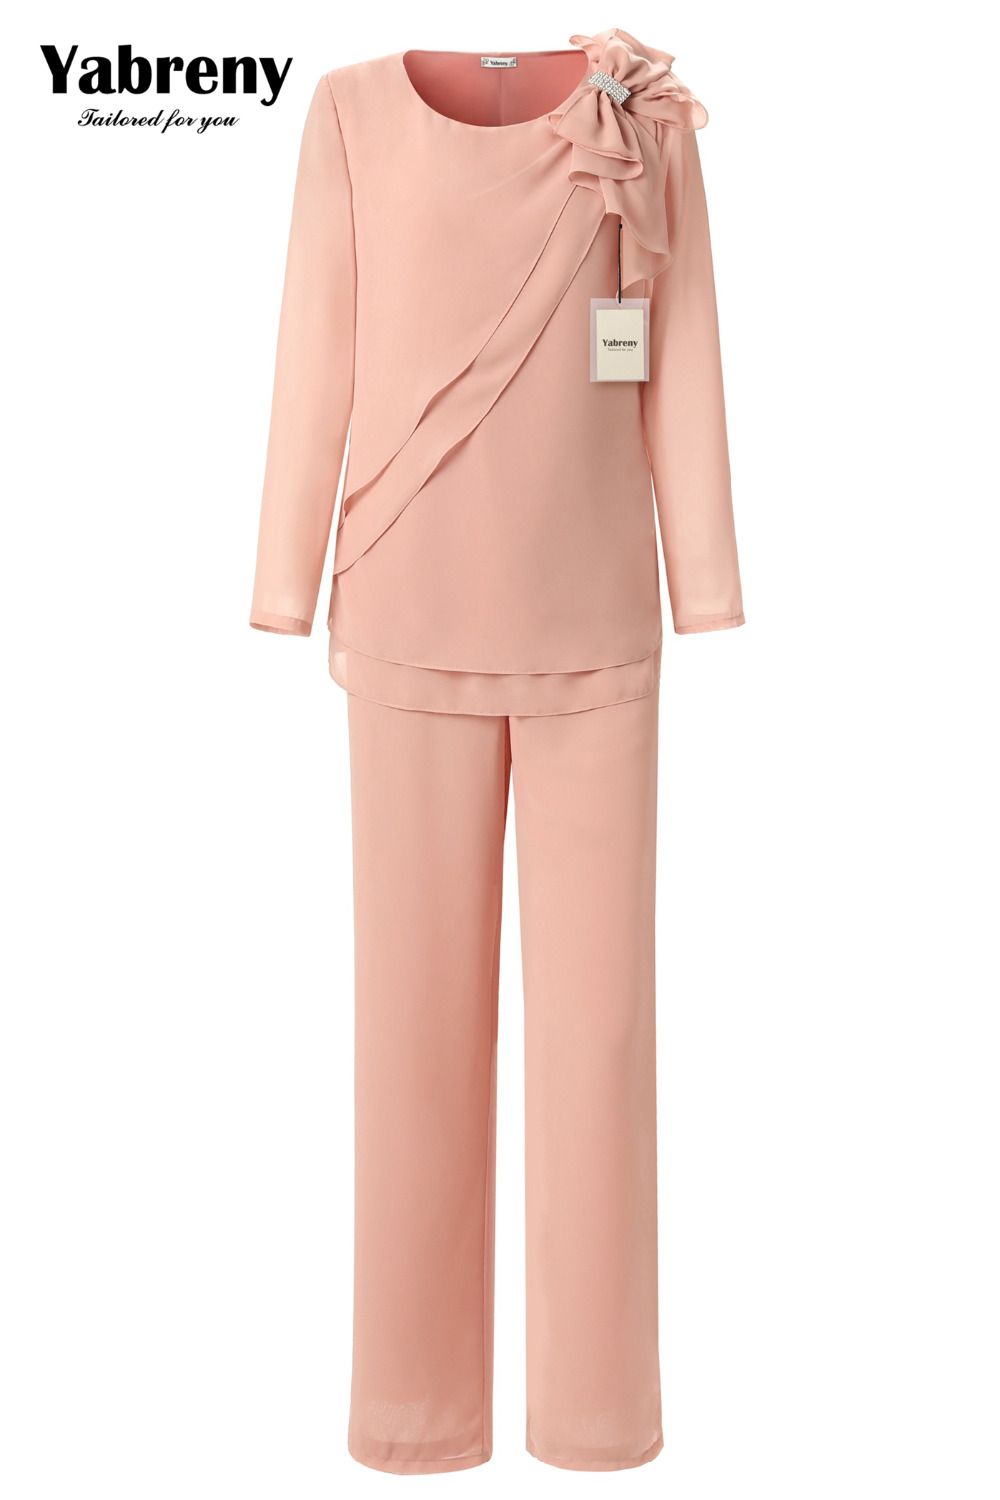 Yabreny Pearl Pink Mother Of  Bride Chiffon Pantsuit Shoulder With Bowknot MT0017015